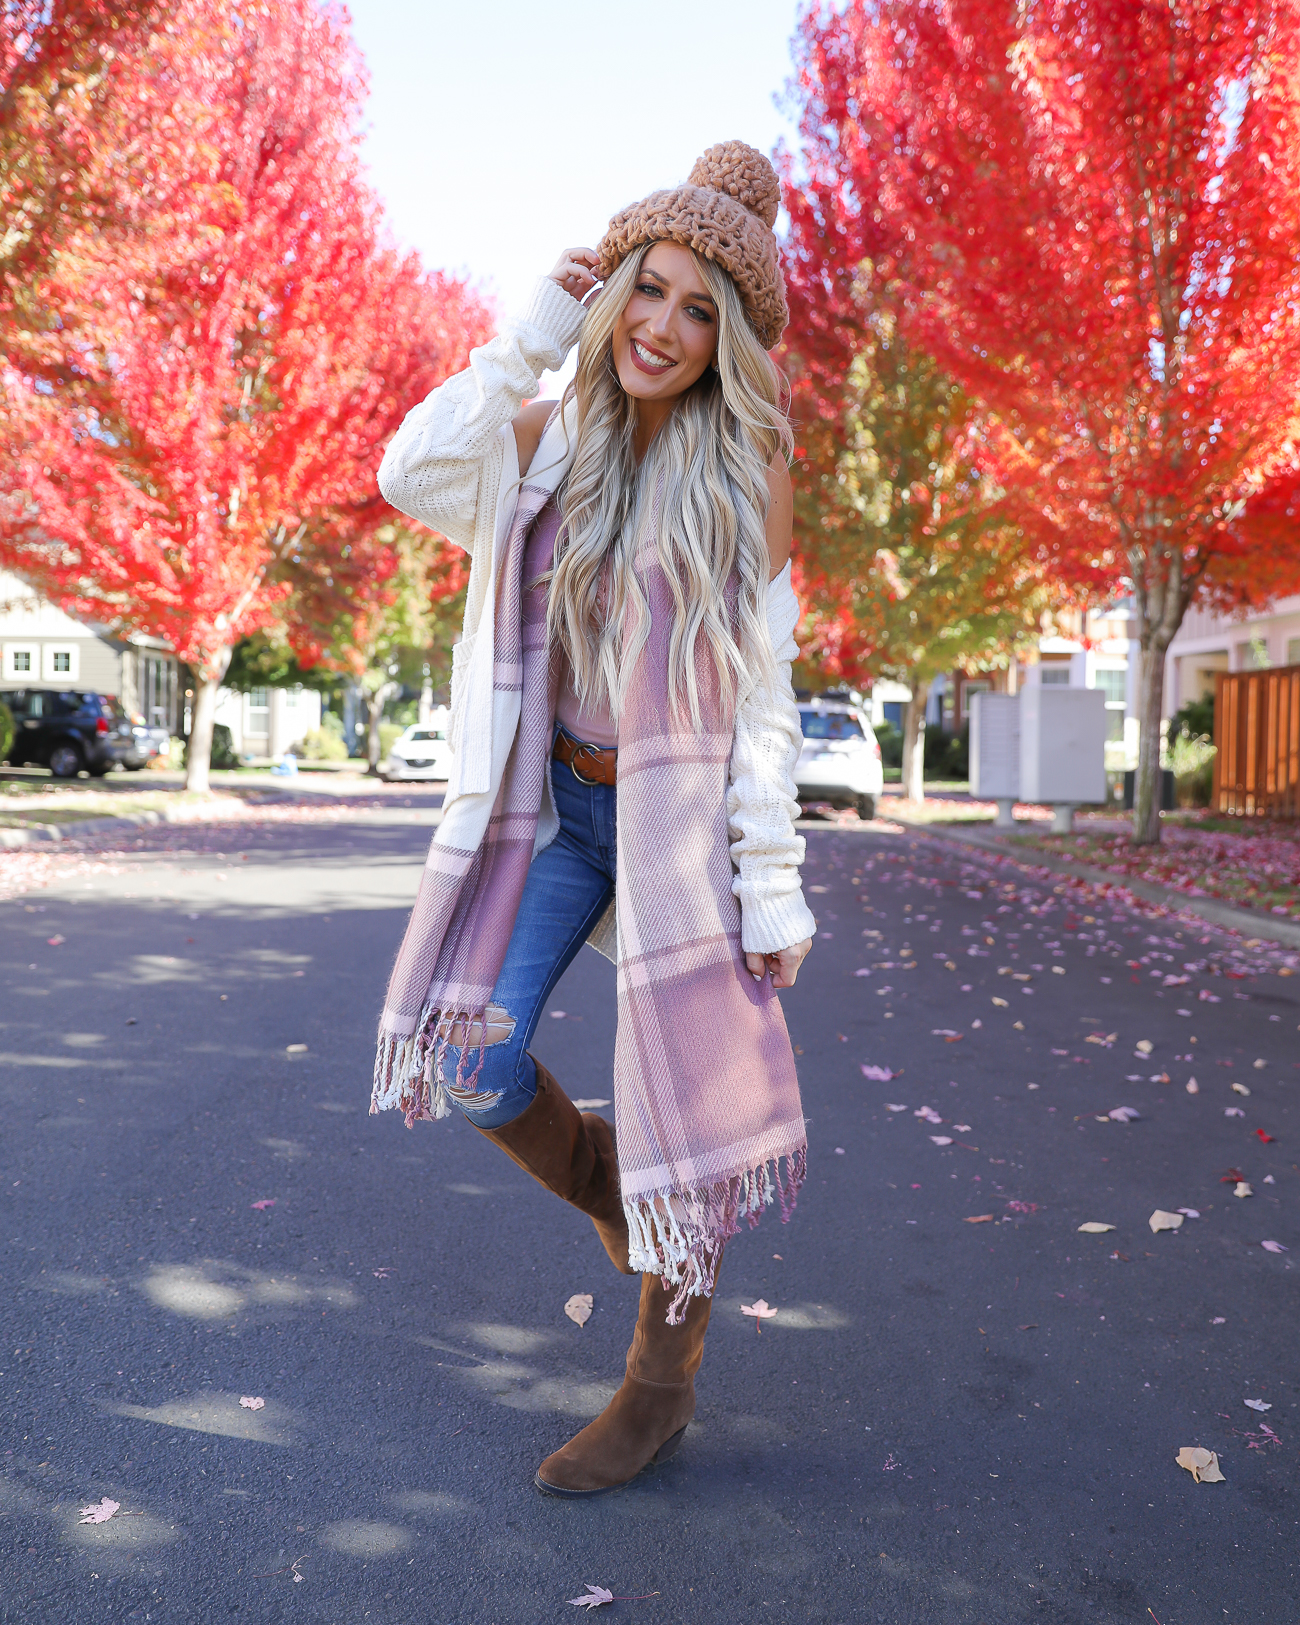 Cozy Fall outfit chunky knit Beanie Pink Plaid scarf White cardigan Fall outfit idea Portland, Oregon-2